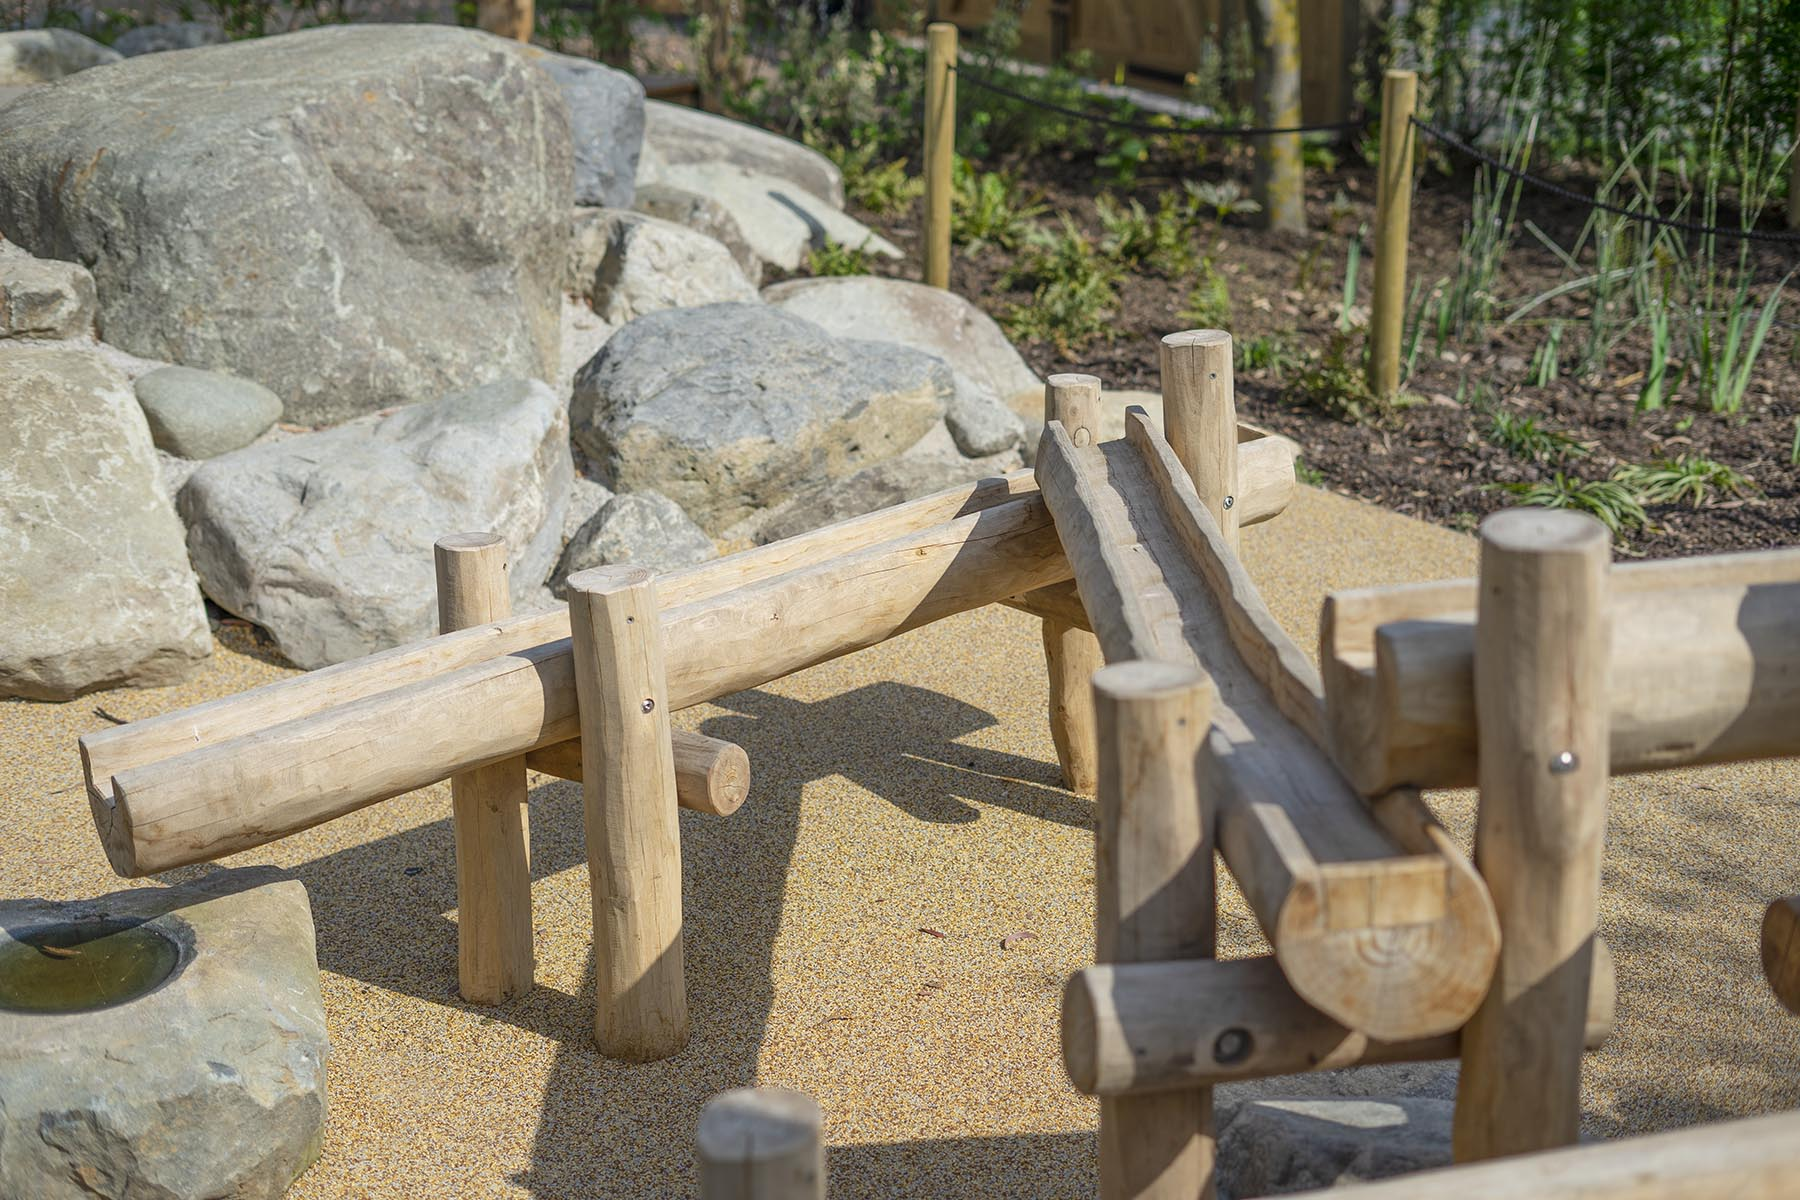 sand and water play equipment log trough